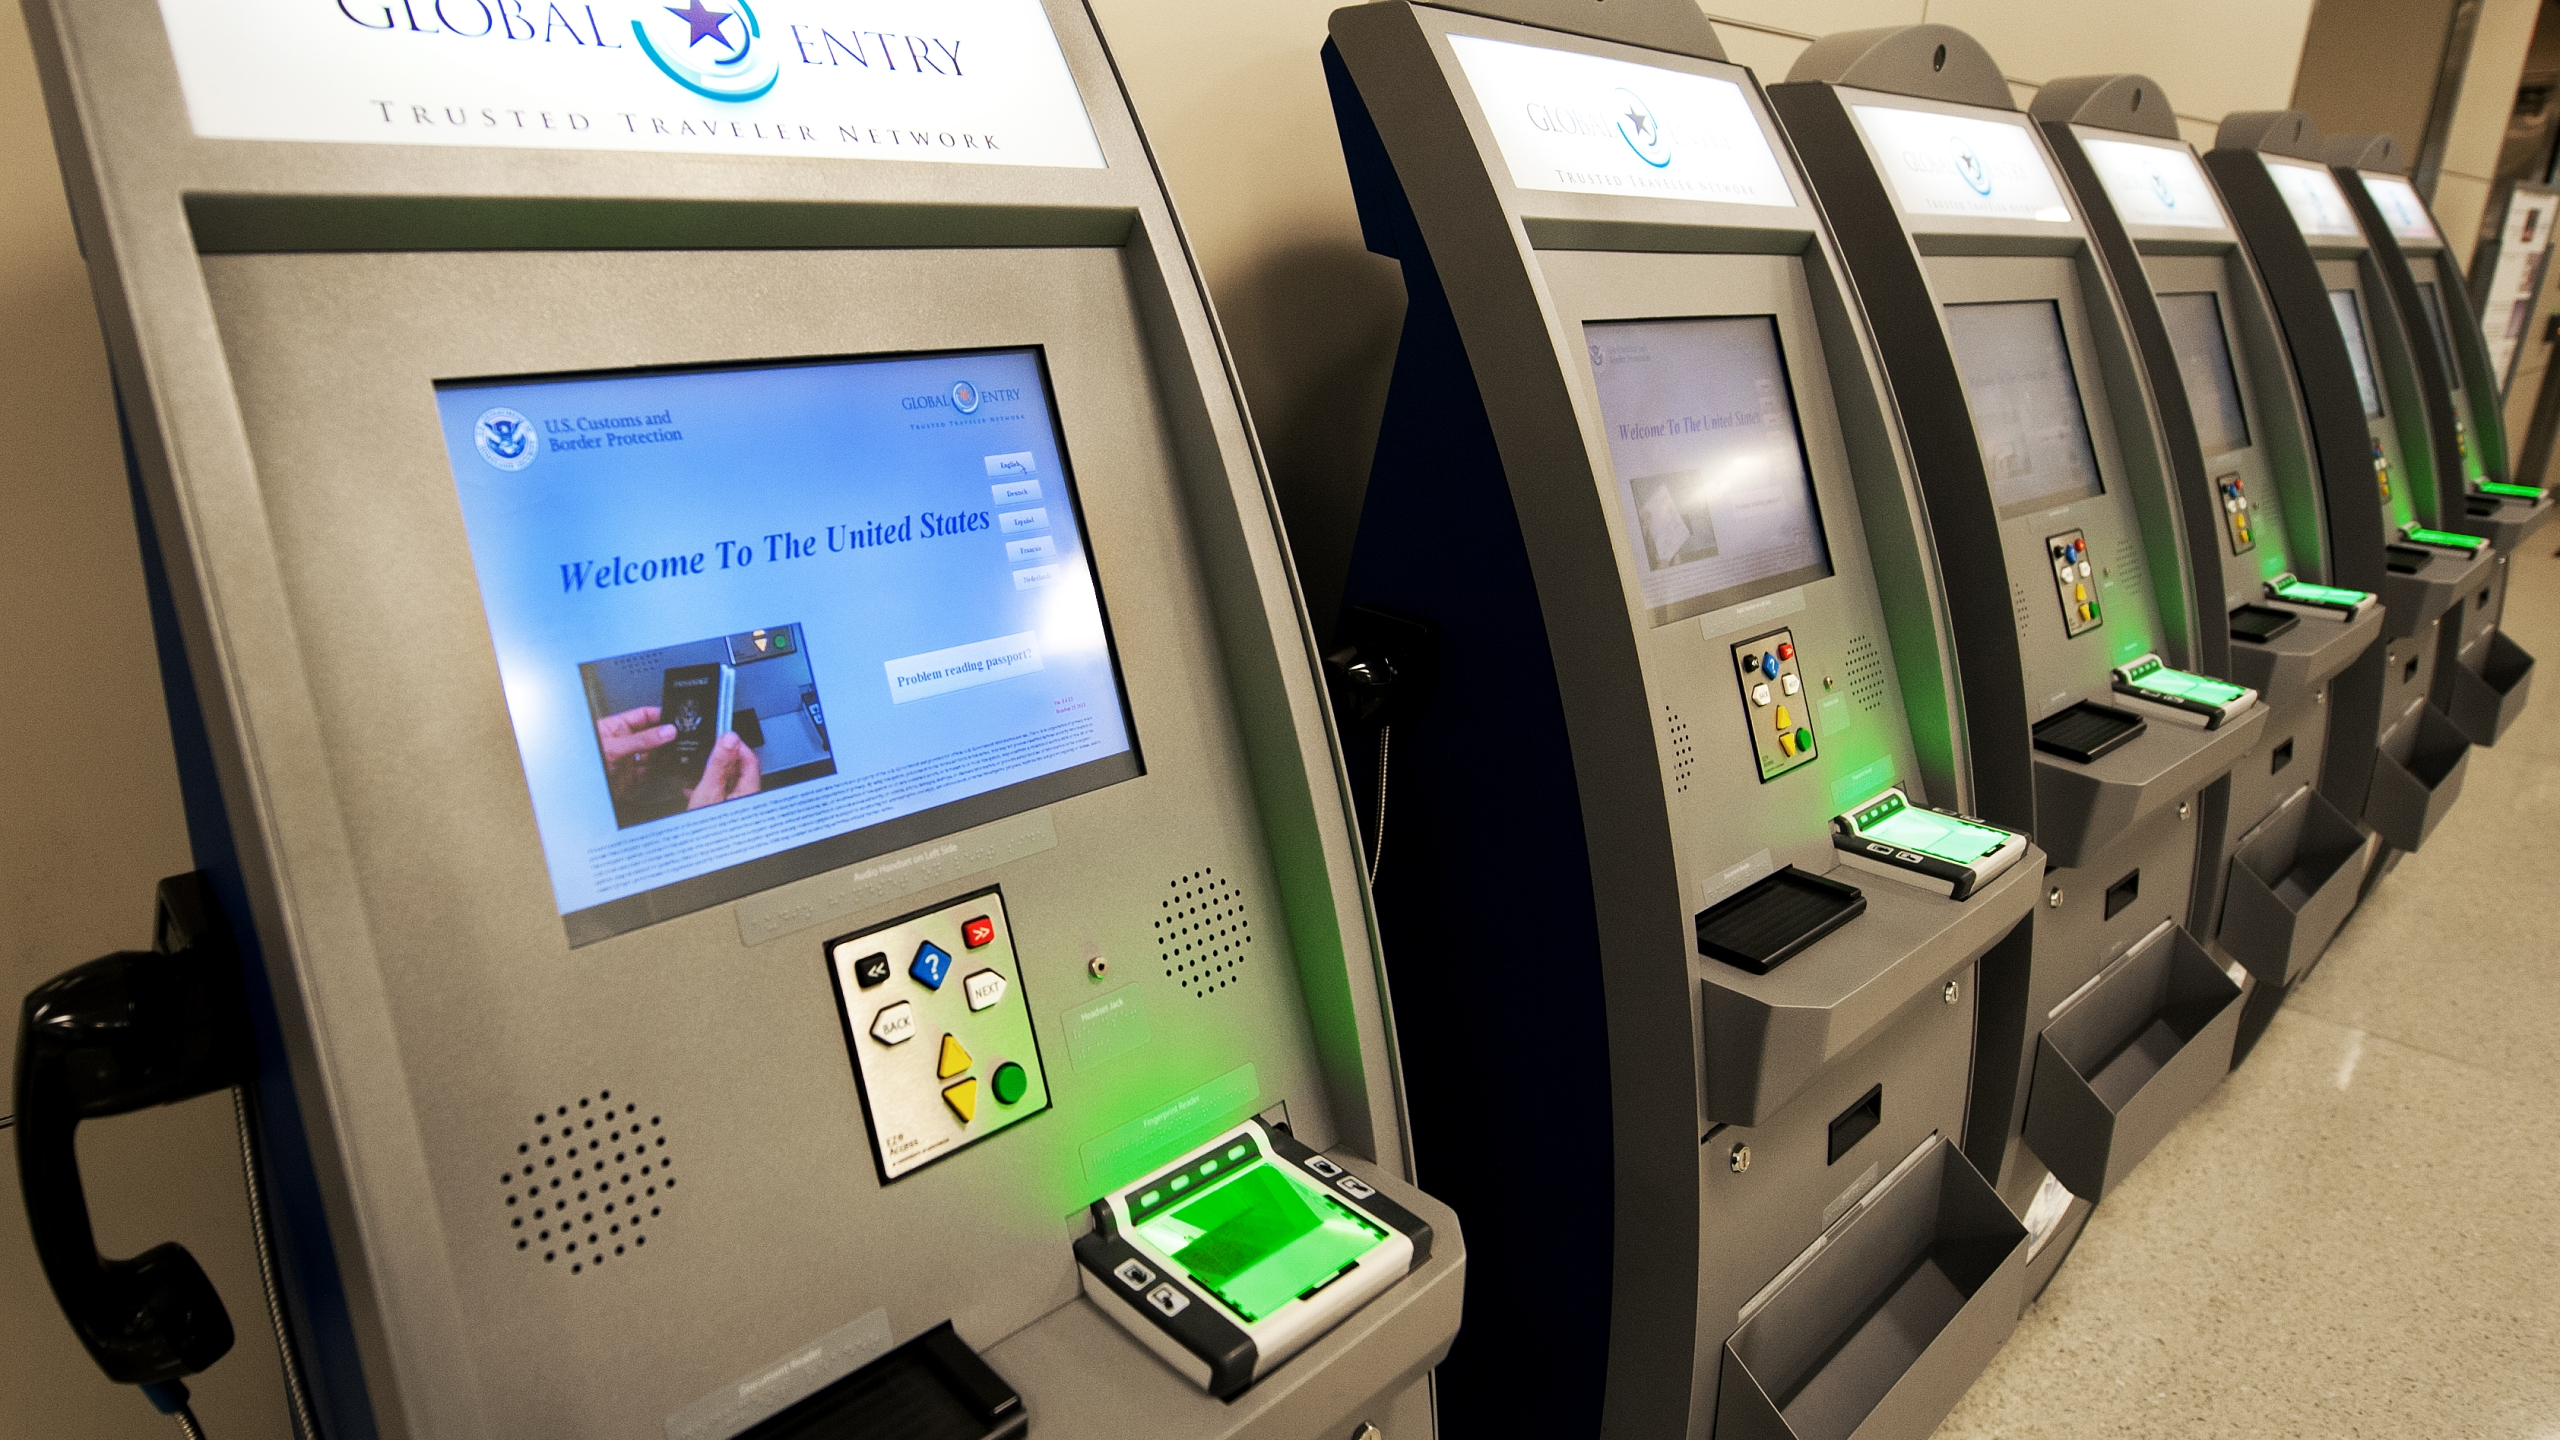 A file photo shows U.S. Customs and Border Protection Global Entry Trusted Traveler Network kiosks at Dulles International Airport on Dec. 21, 2011 in Sterling, Virginia, near Washington, D.C. (Credit: PAUL J. RICHARDS/AFP/Getty Images)